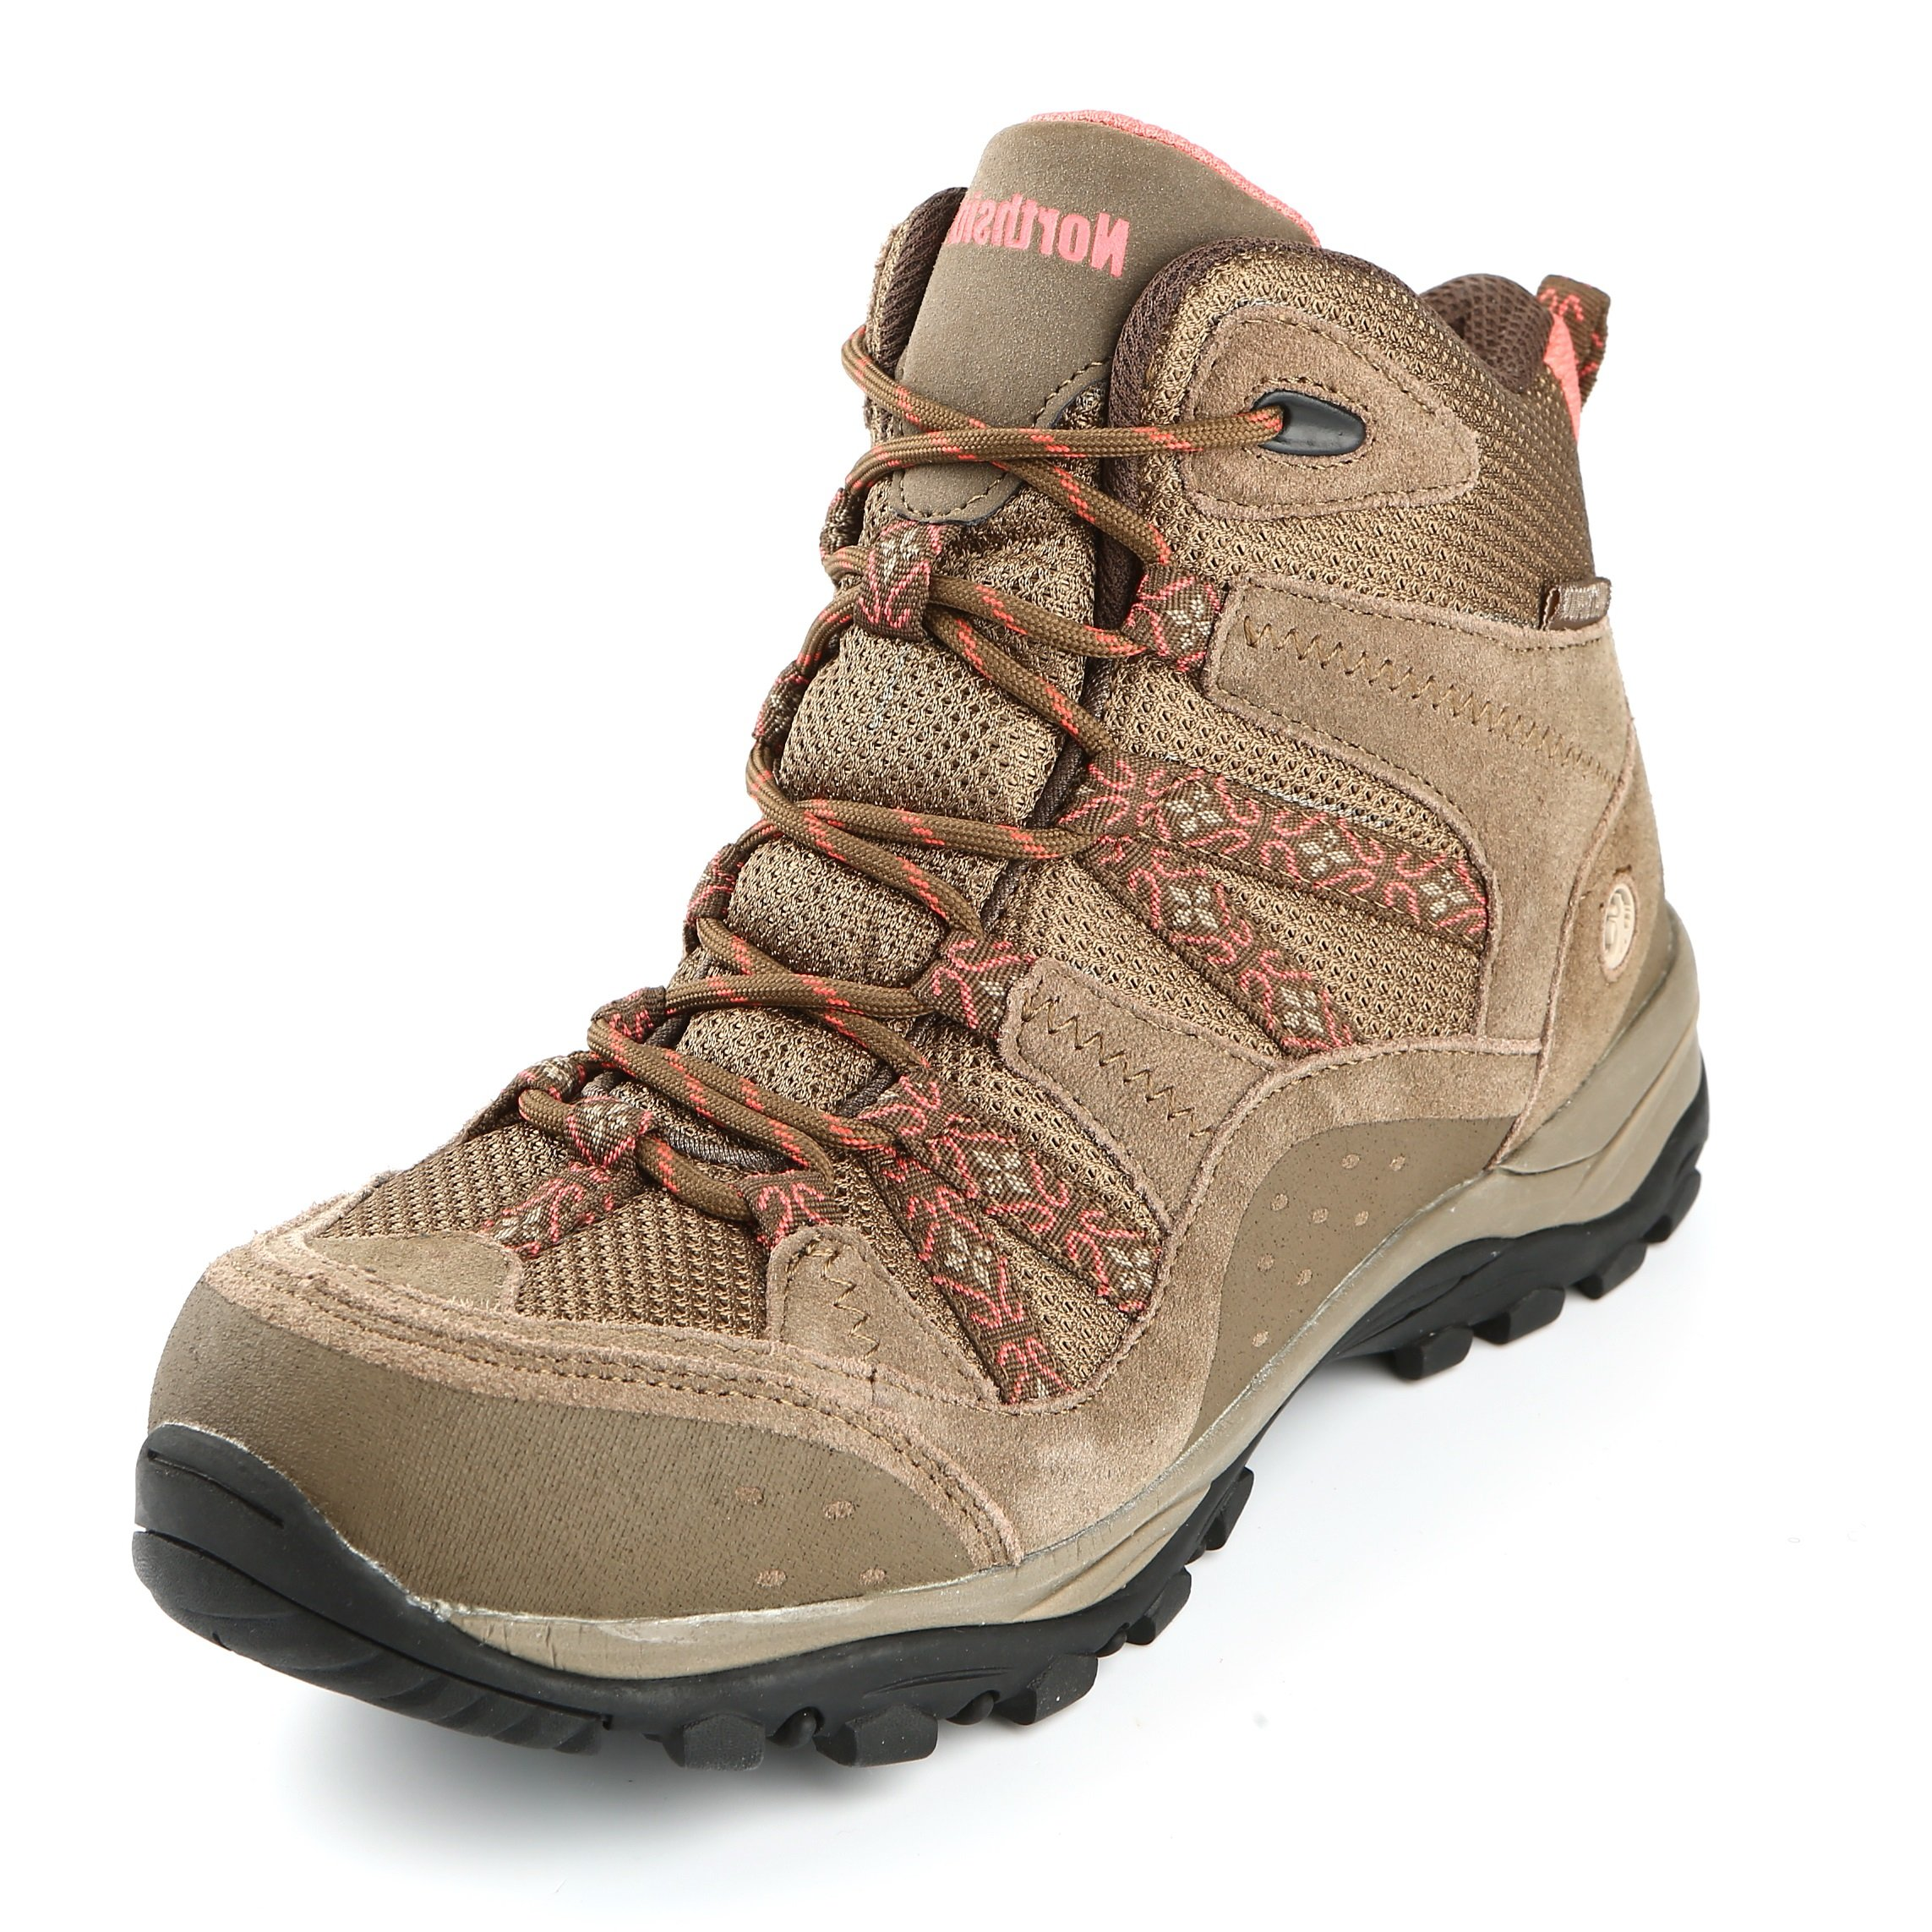 Northside Women's Freemont Waterproof Hiking Boot, Tan/Coral, 8 B(M) US